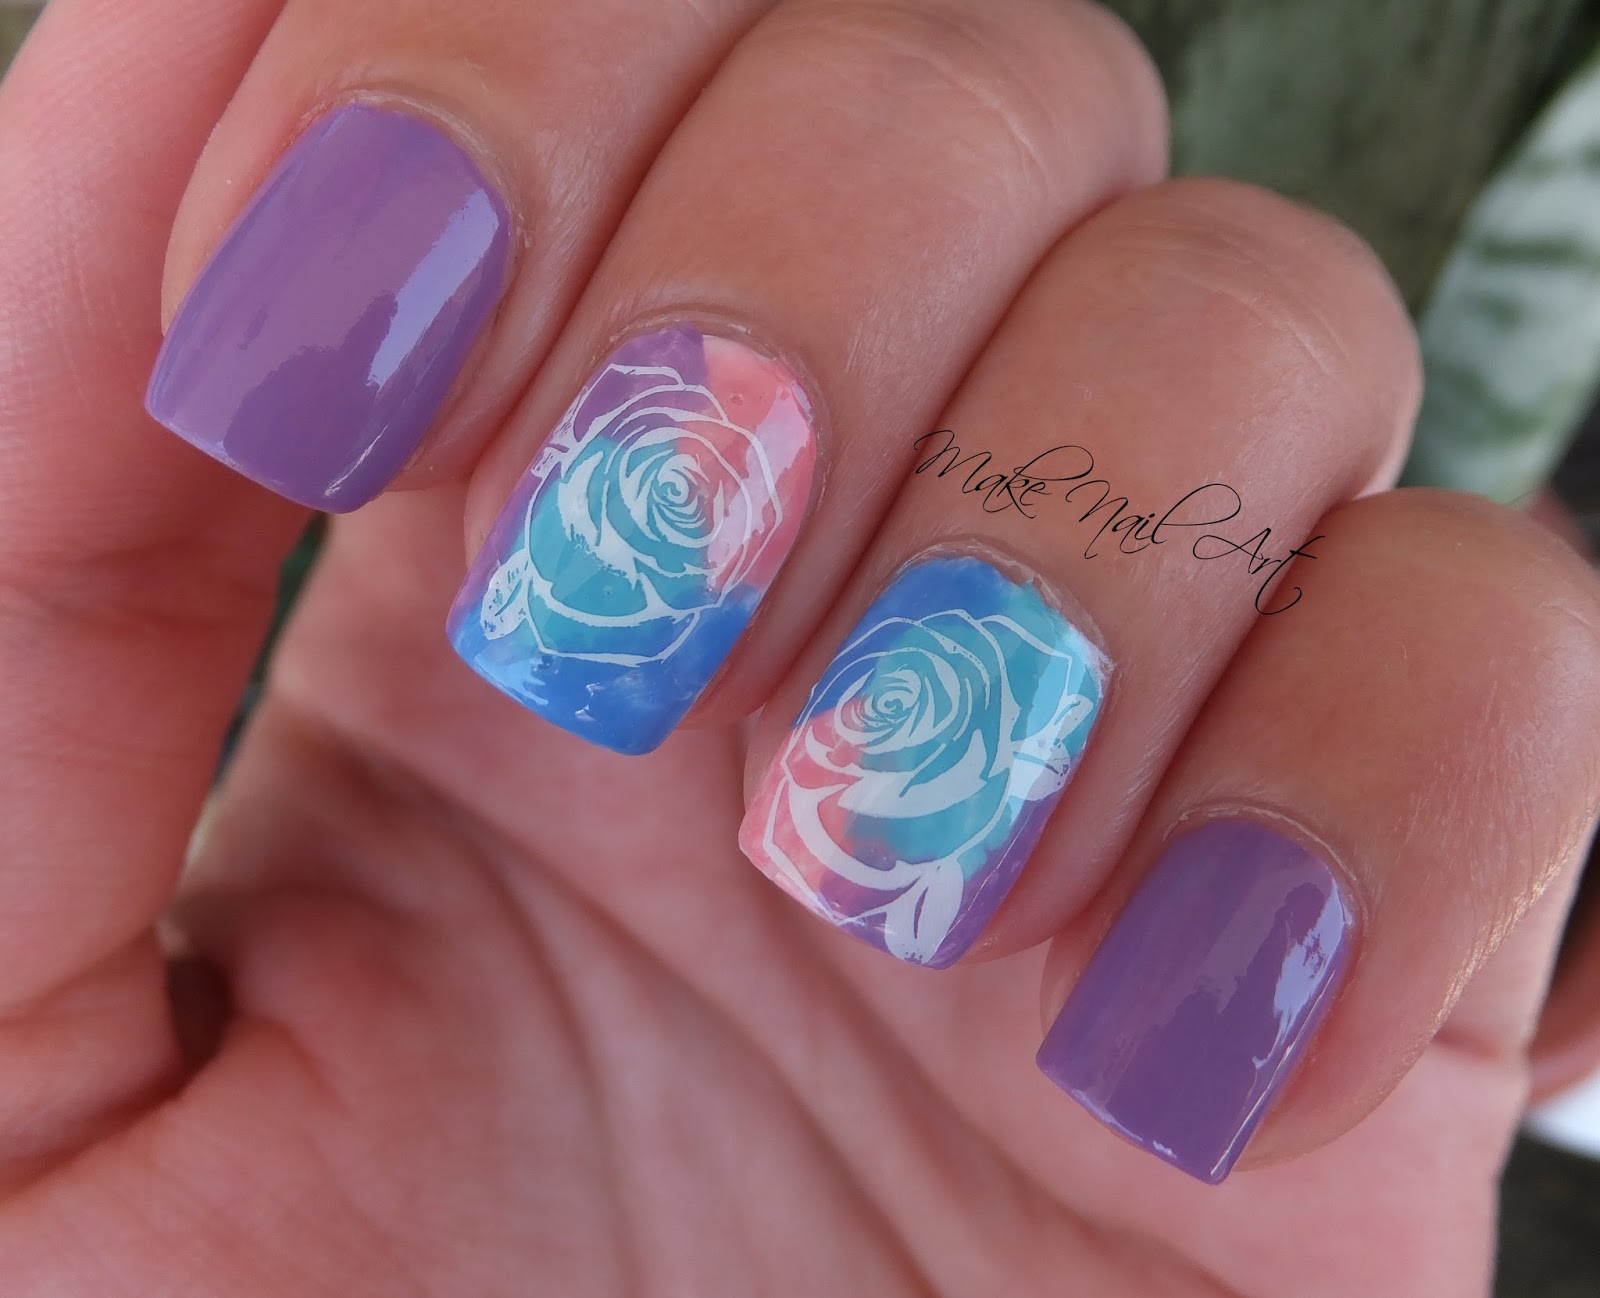 Cute Rose Nail Art Video My Own Email